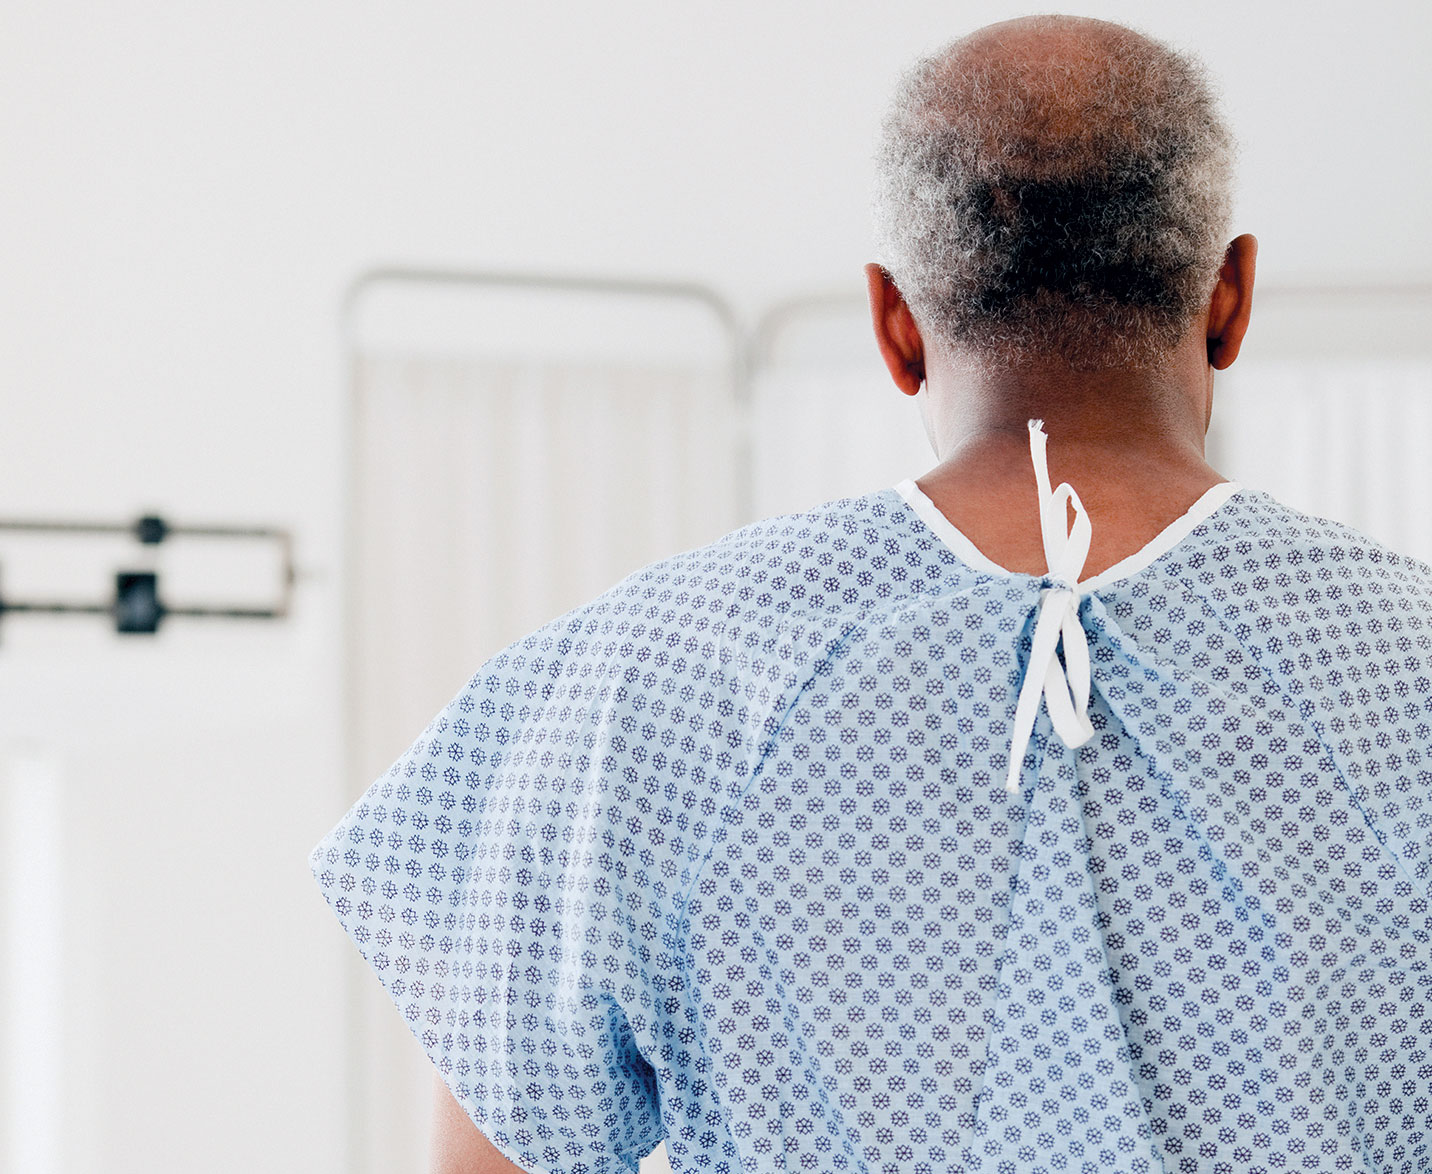 CMS holds off on CAR-T cancer treatment coverage decision